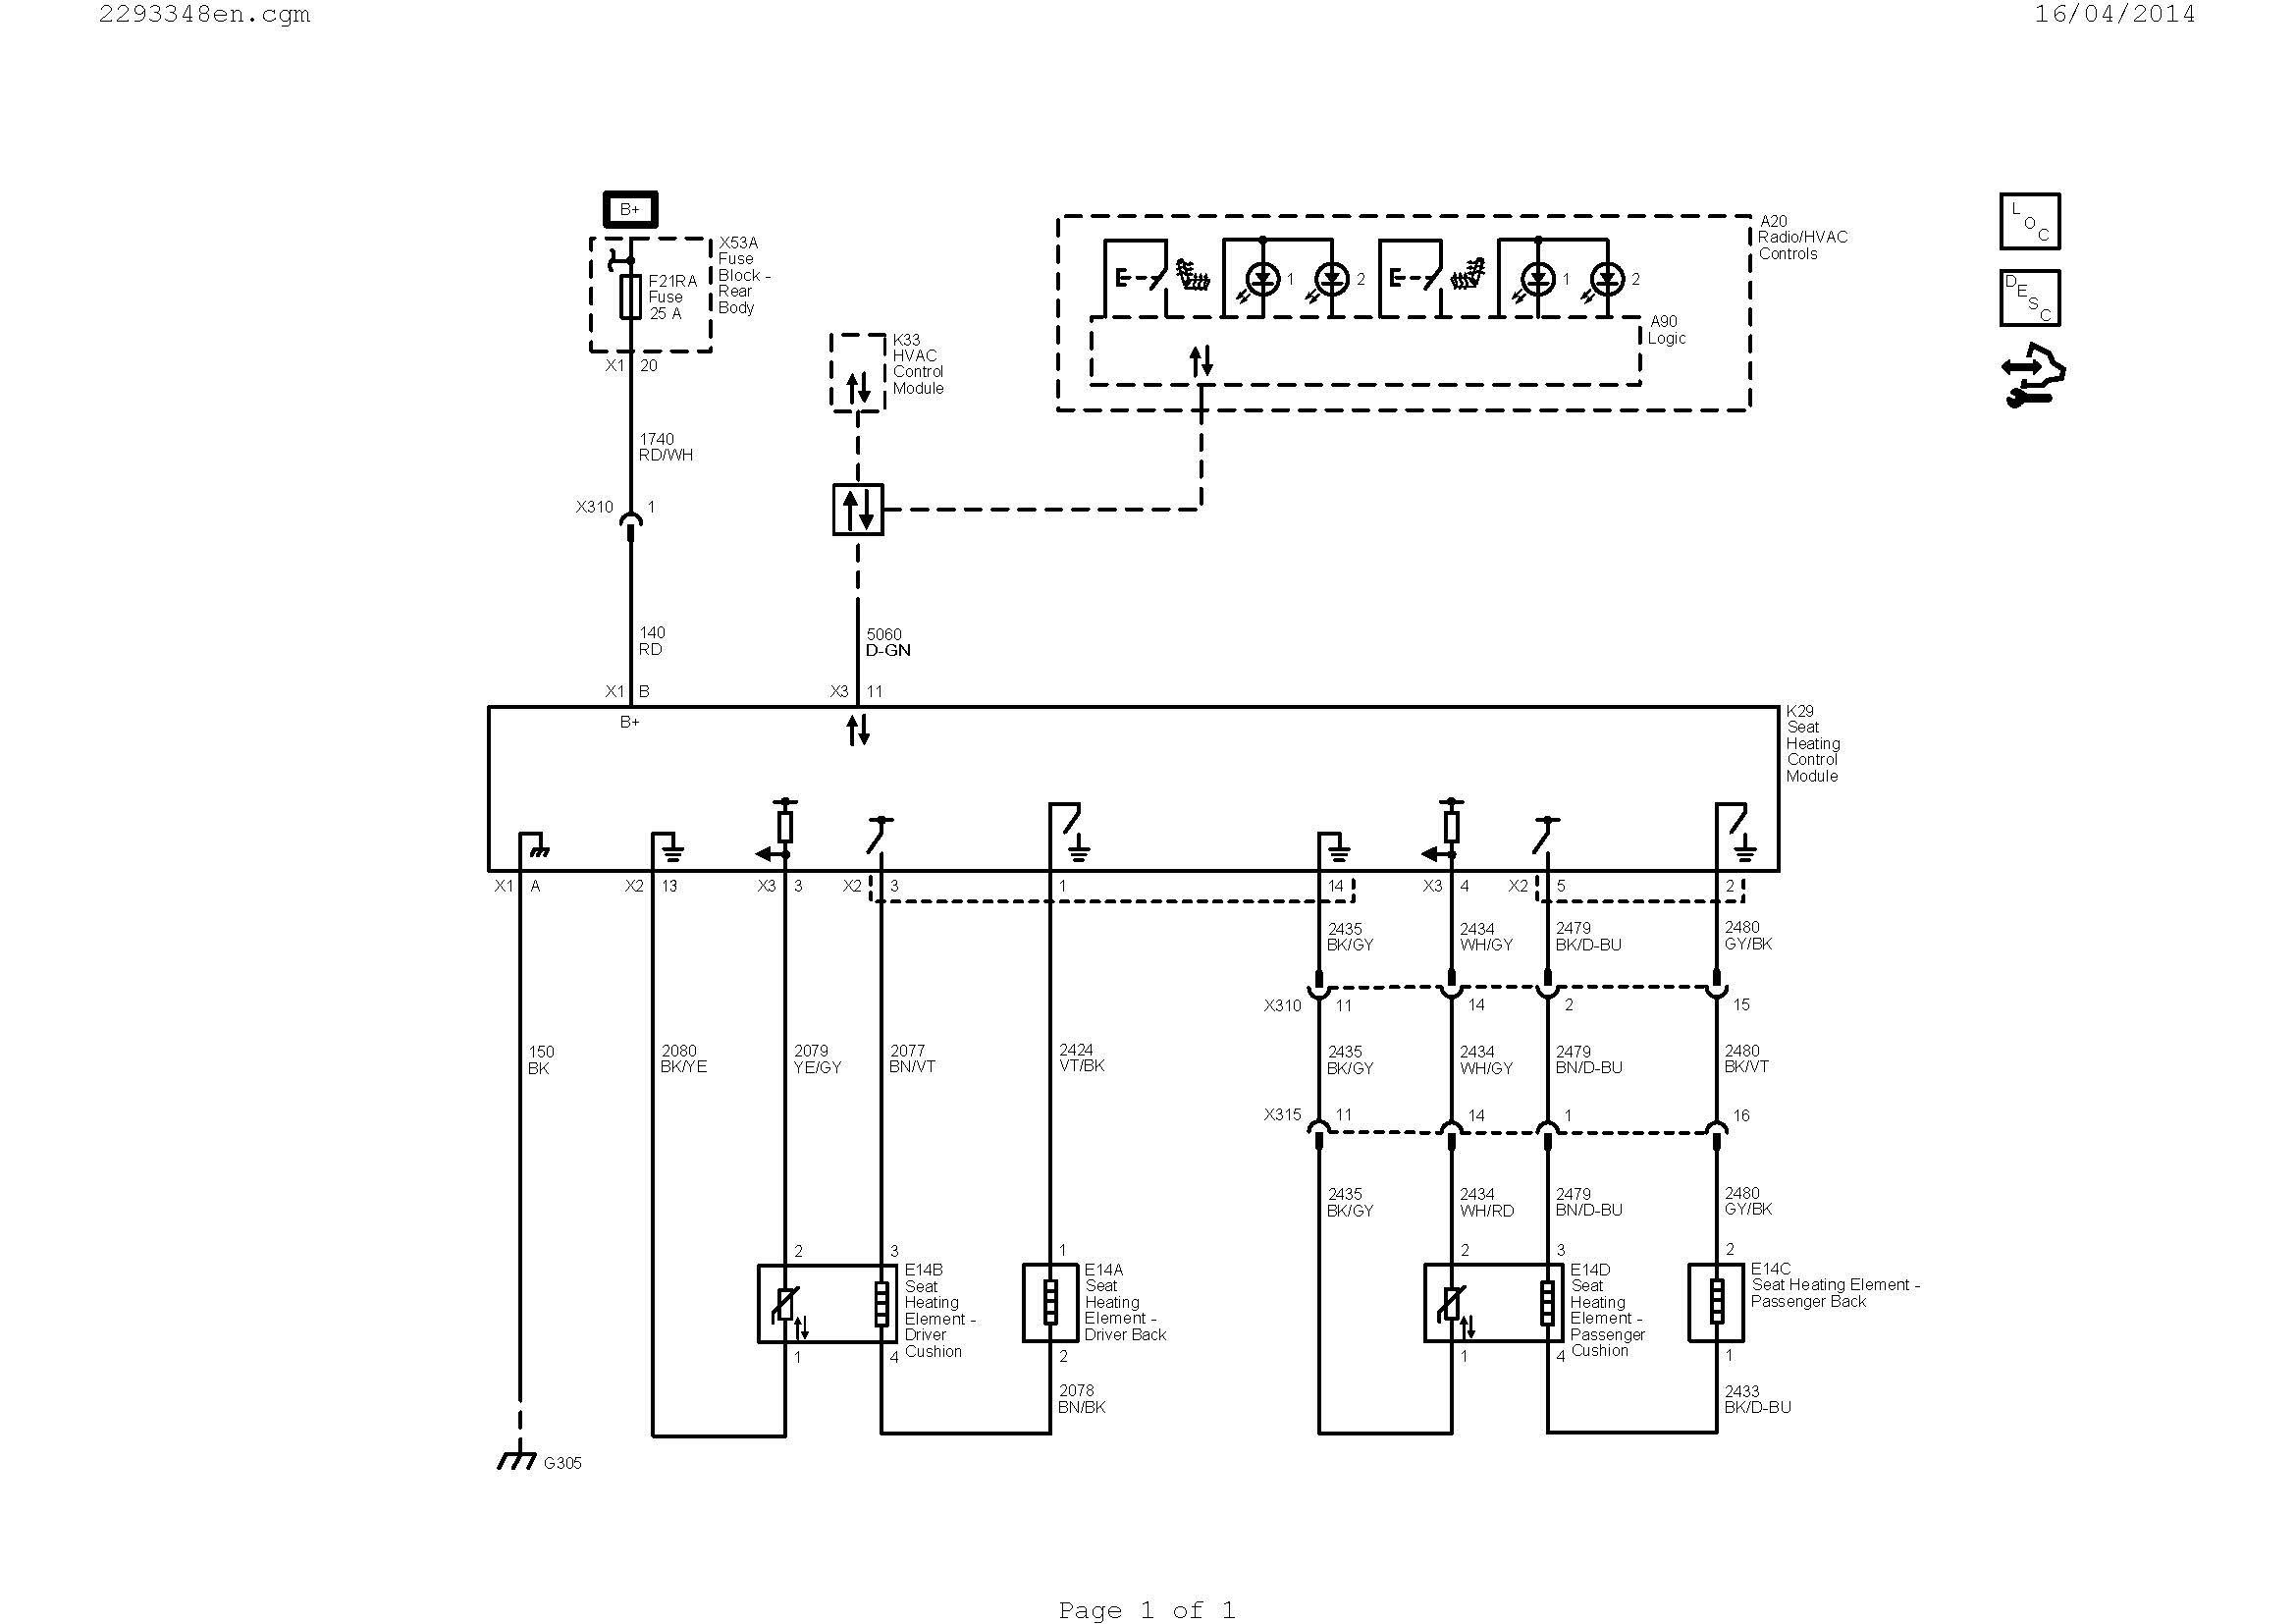 carrier ac wiring diagram Collection-air conditioner wiring diagram picture Collection Wiring A Ac Thermostat Diagram New Wiring Diagram Ac 10-h